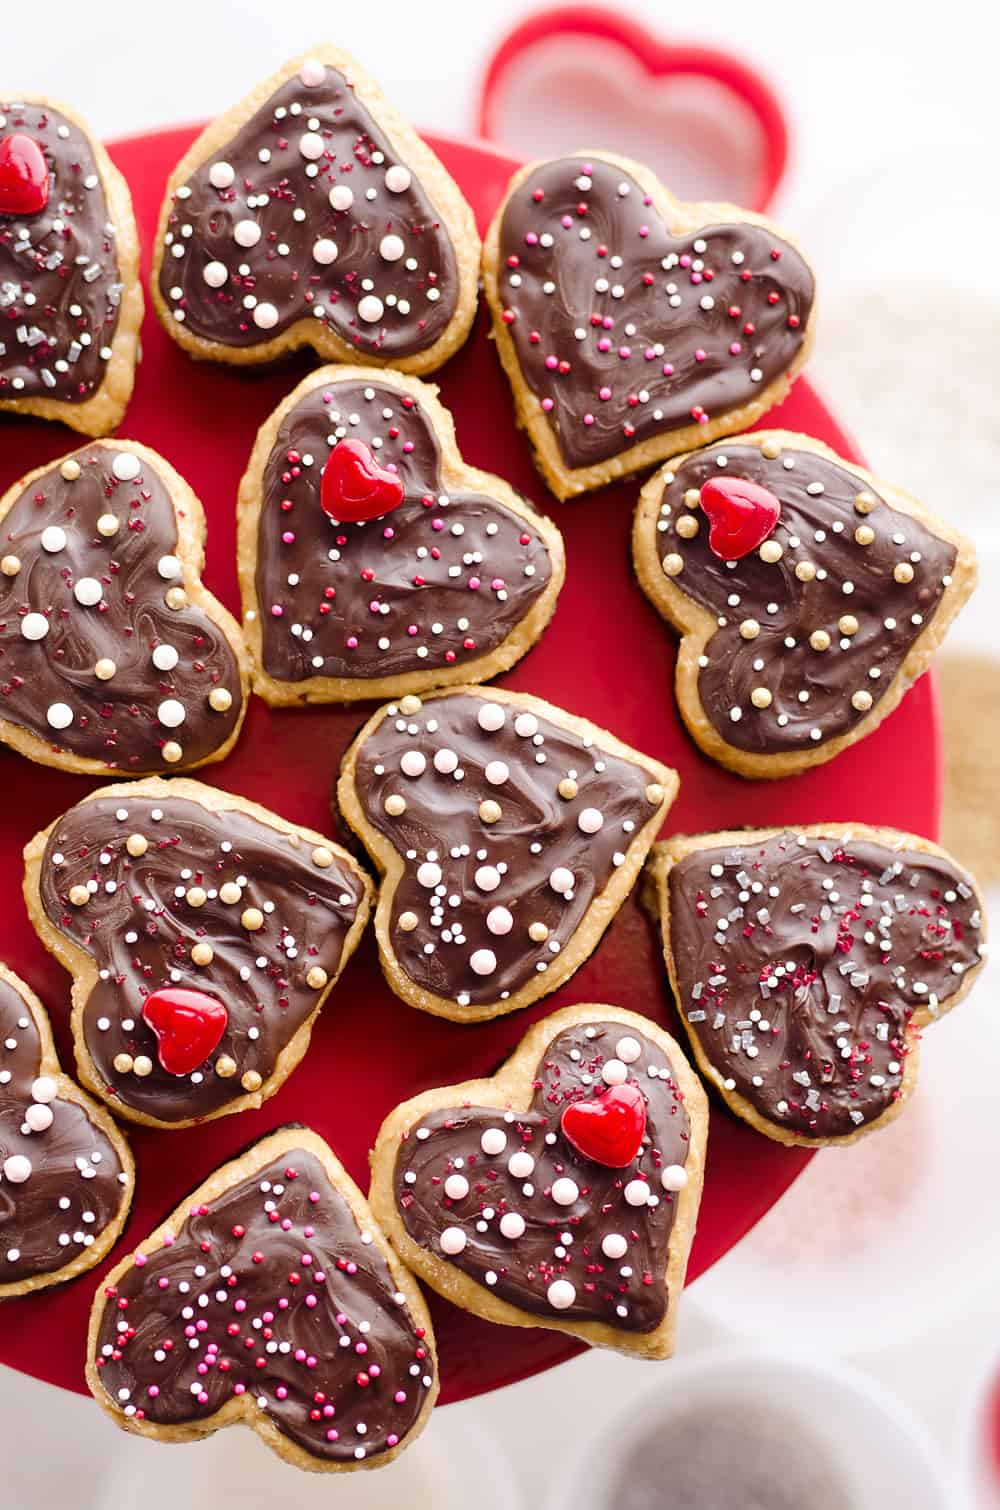 Peanut Butter Buckeye Brownie Hearts are the perfect sweet for your special Valentine. They combine two of the best desserts into one amazing treat with brownies and peanut butter buckeyes!